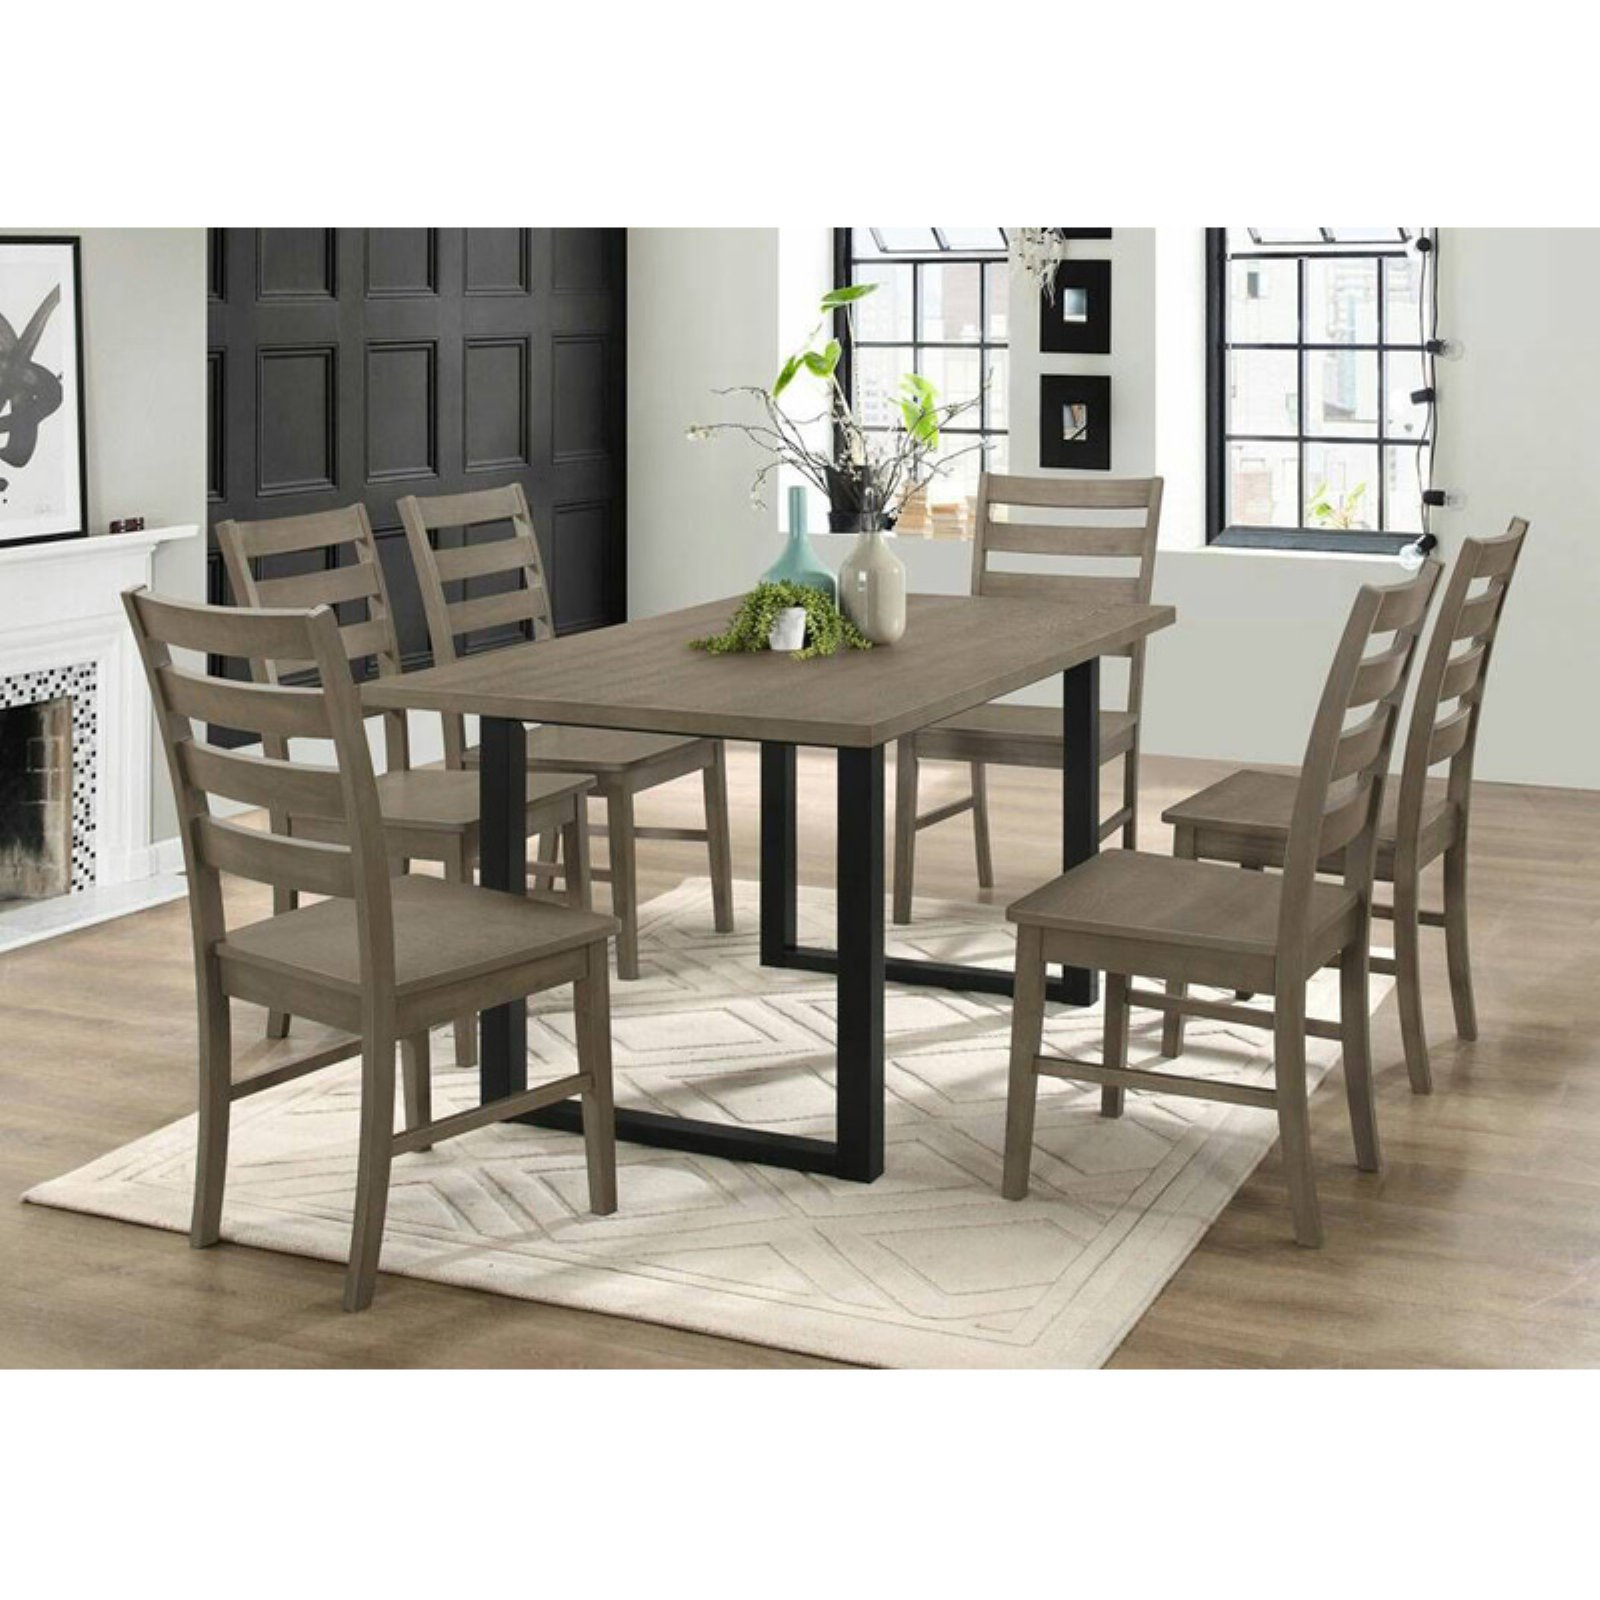 2017 Walker Edison Modern 7 Piece Dining Table Set Grey In 2019 Throughout Kieffer 5 Piece Dining Sets (#1 of 20)